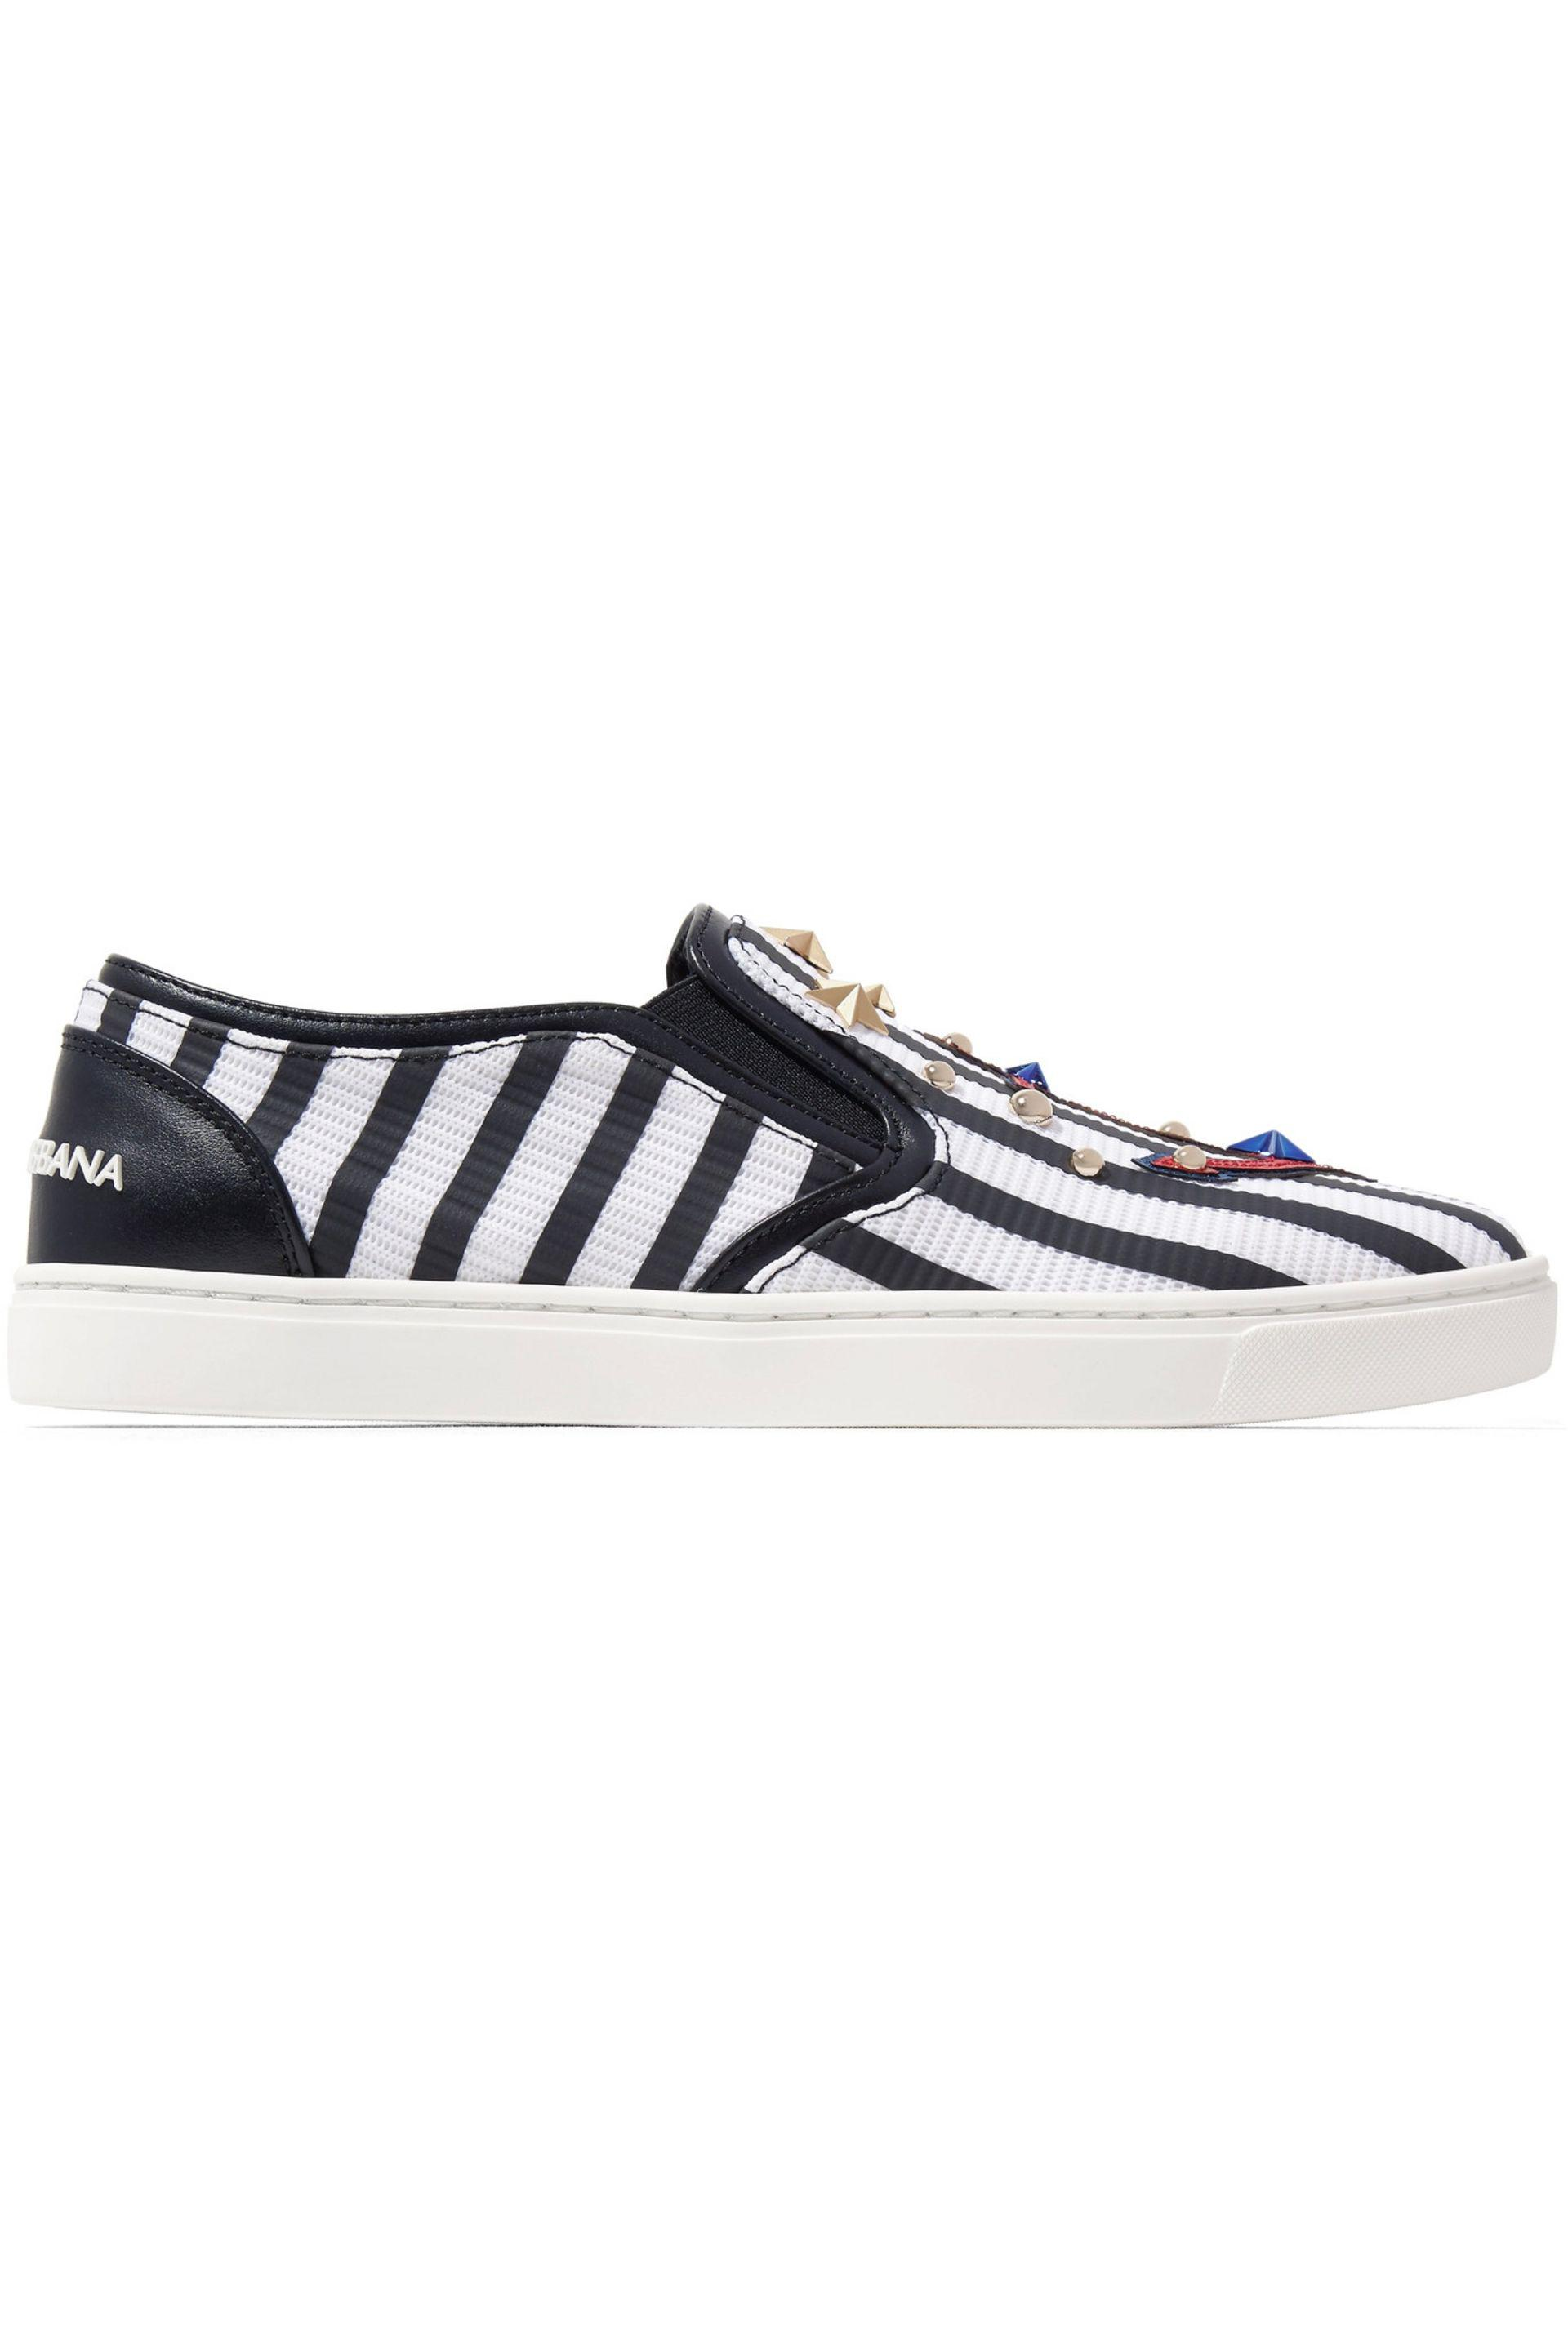 Dolce & Gabbana Leather Embellished Slip-On Sneakers deals cheap online scAnhODEp